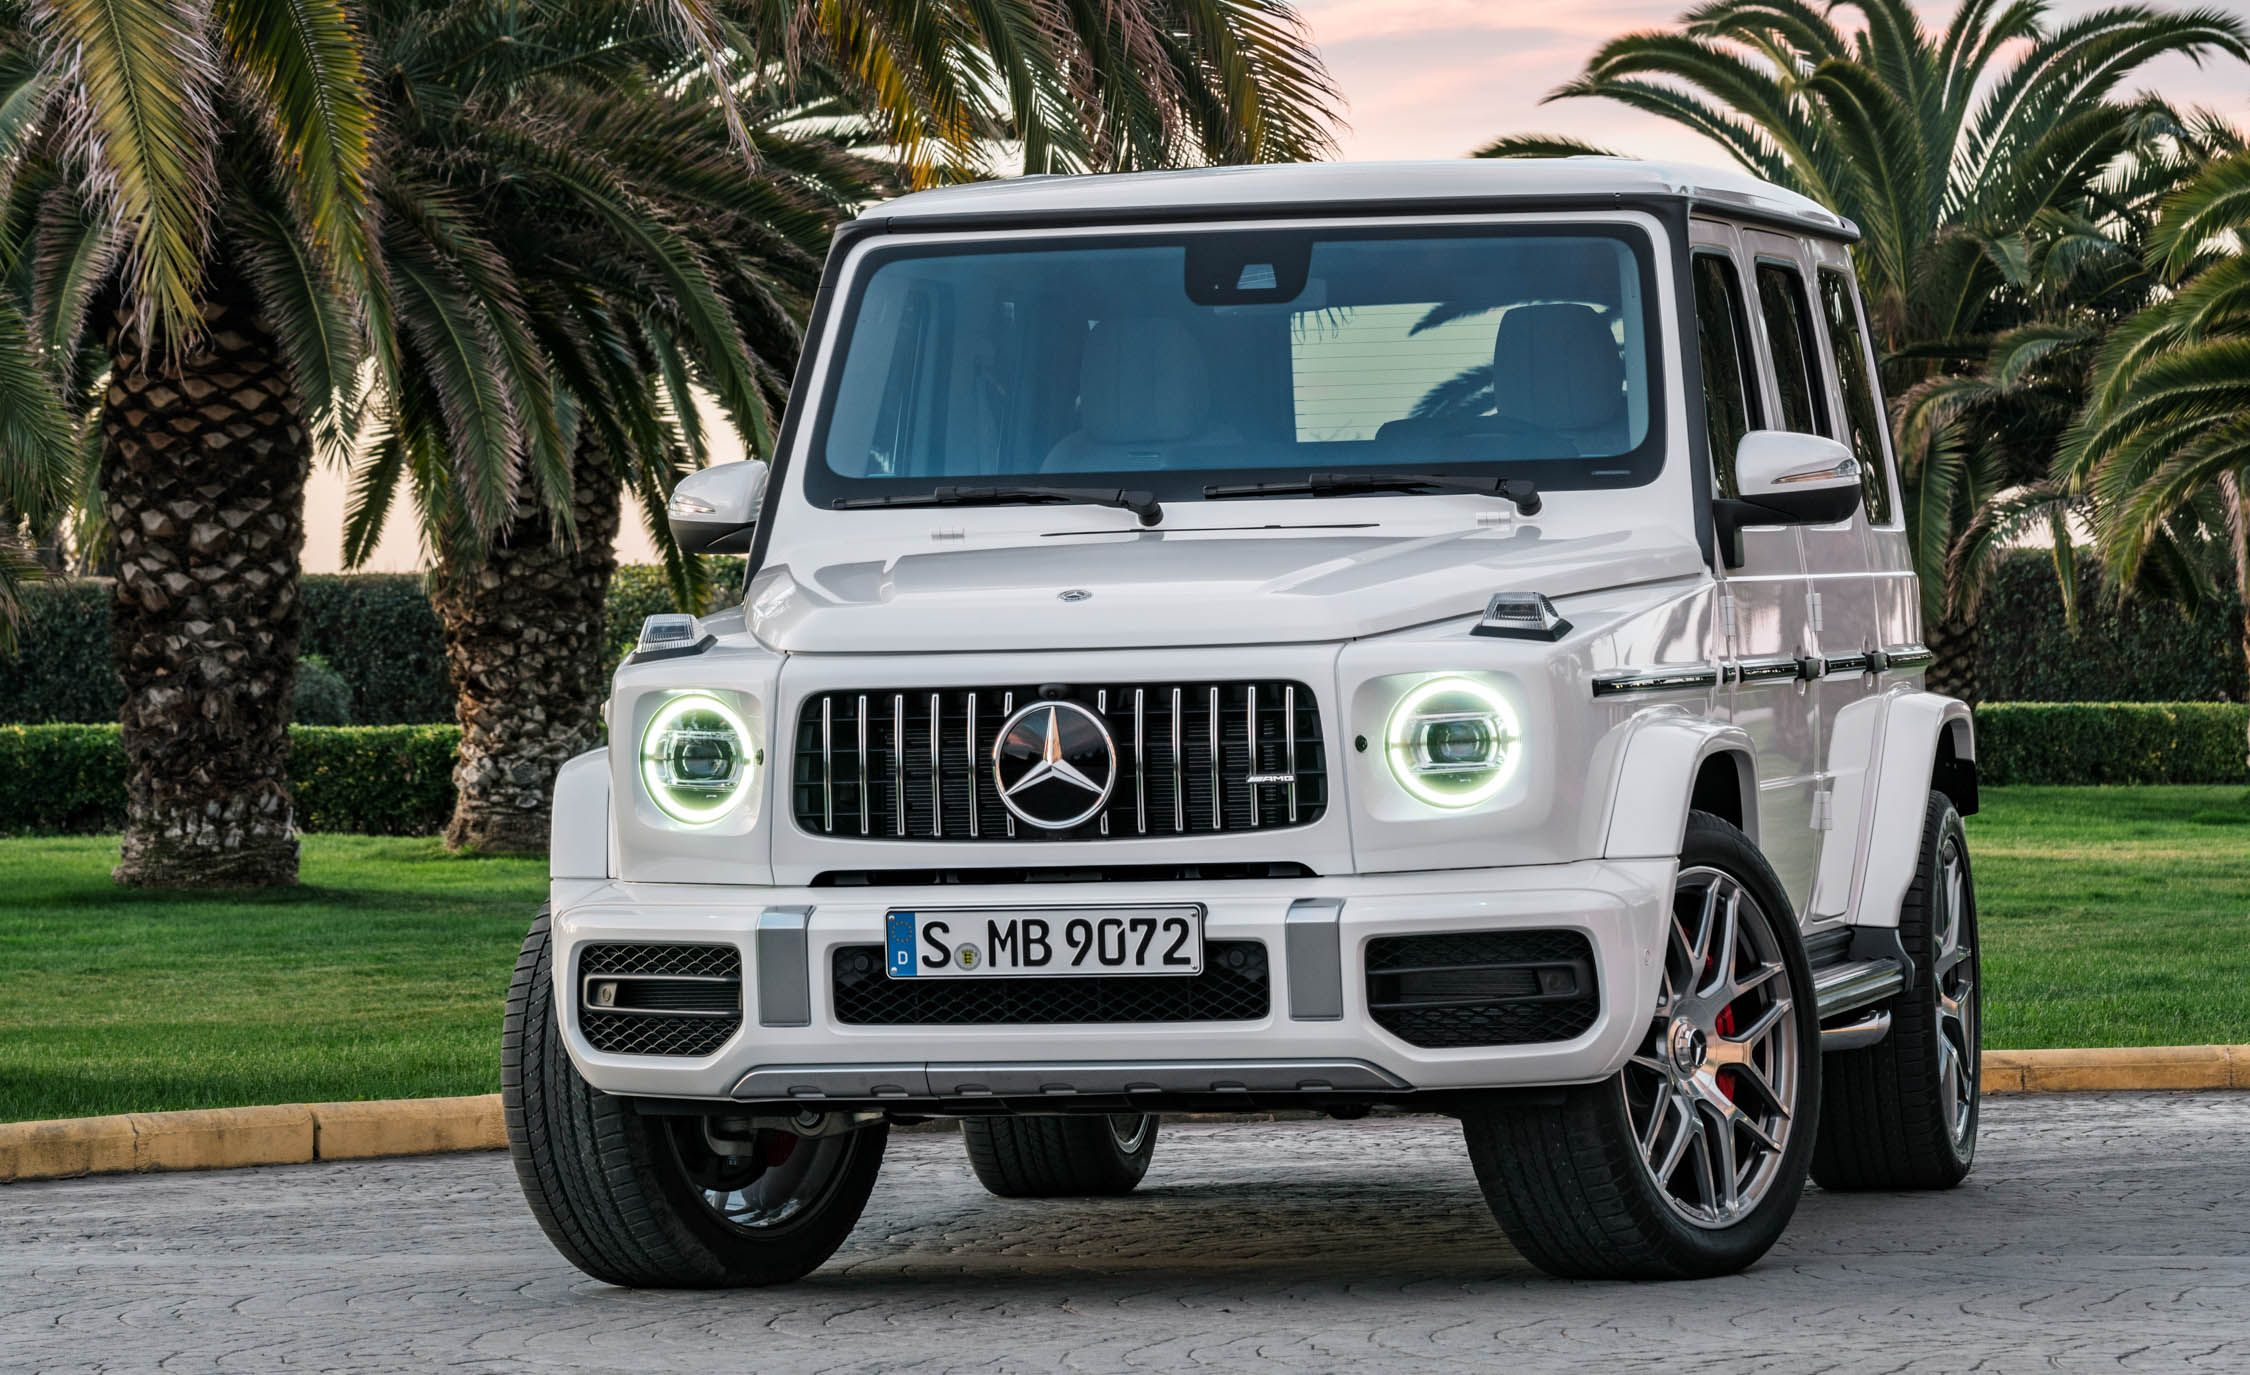 2019 Mercedes Amg G63 G65 4matic Reviews Mercedes Amg G63 G65